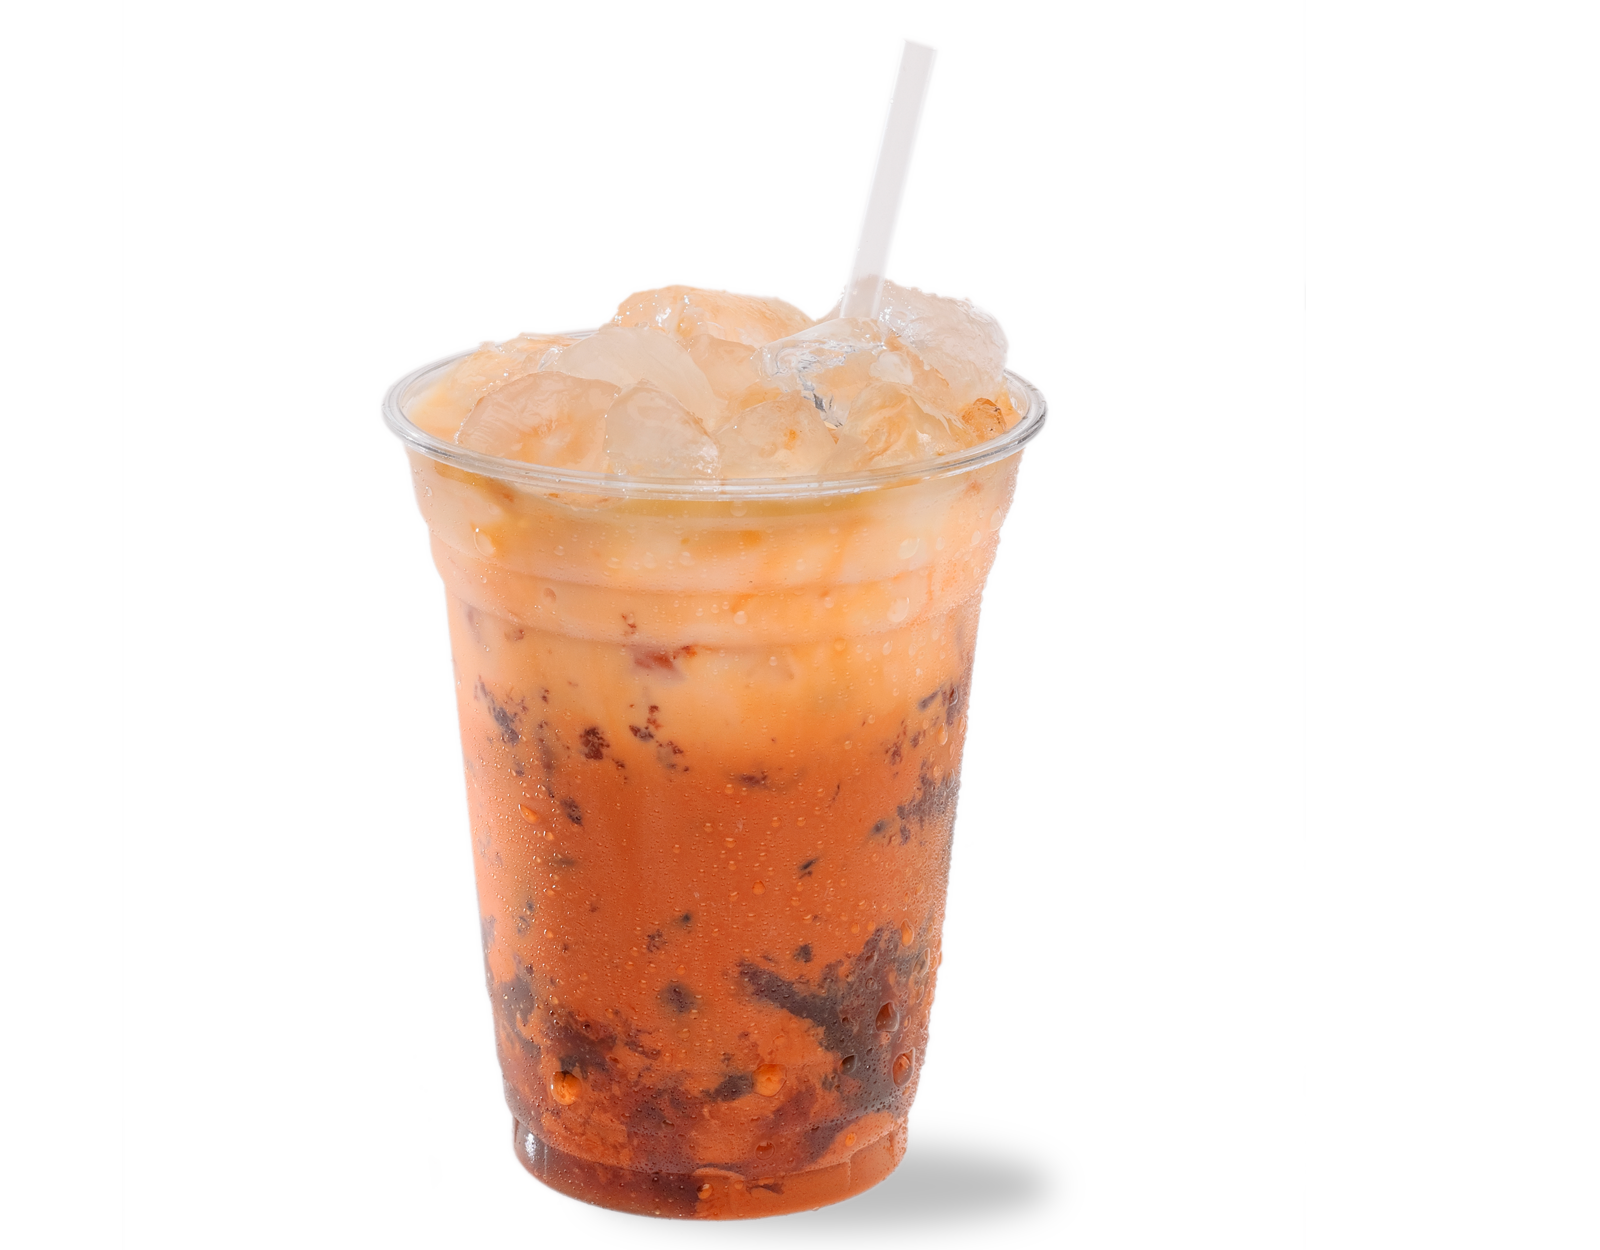 I had an urge for a Tim Horton's Iced cappuccino one day and found this recipe. I think it's awsome, but a litte tip of variation for iced cap lovers: Instead of putting the coffee and milk mixt.